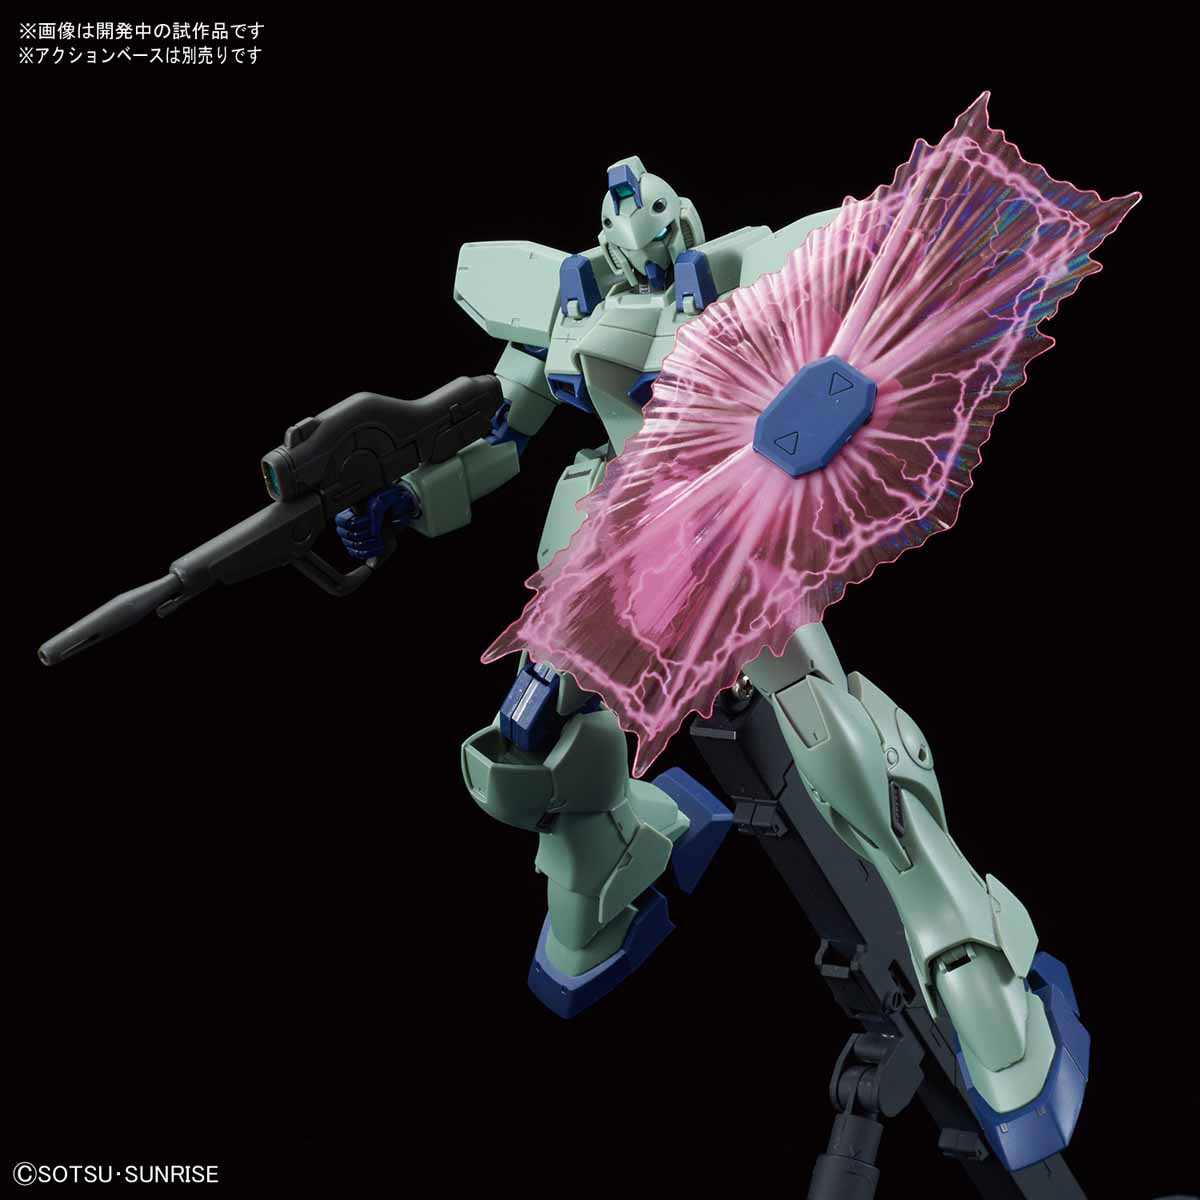 Bandai Reborn:One Hundred Gun-EZ